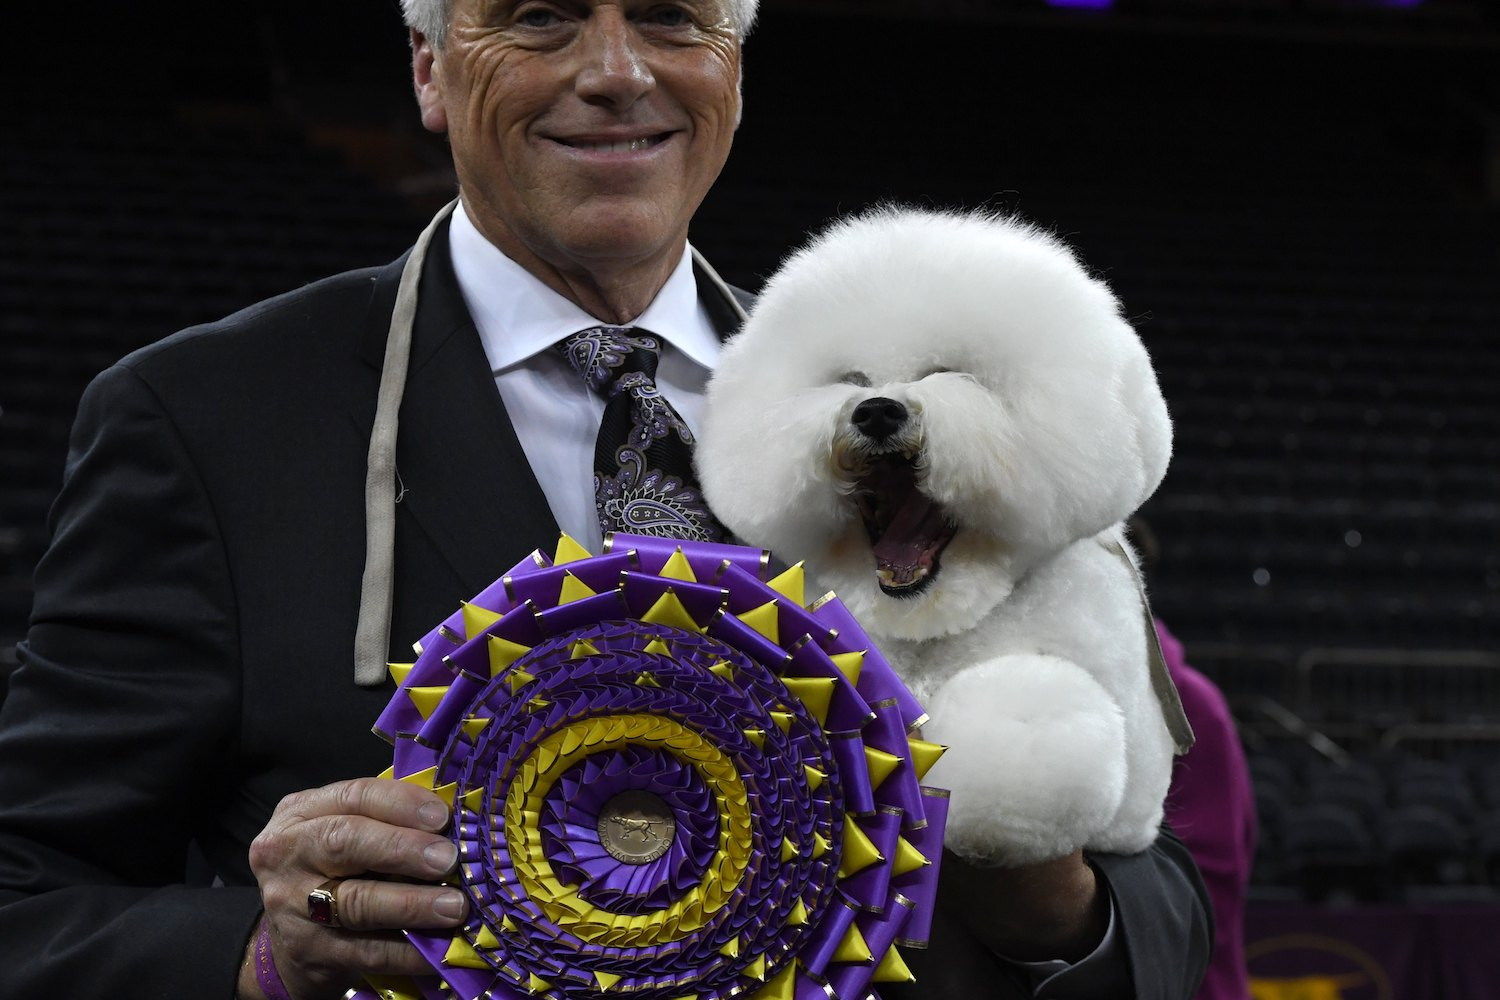 """TOPSHOT - """"Flynn"""" the Bichon Frise, with handler Bill McFadden, poses after winning """"Best in Show"""" at the Westminster Kennel Club 142nd Annual Dog Show in Madison Square Garden in New York February 13, 2018. / AFP PHOTO / TIMOTHY A. CLARY        (Photo credit should read TIMOTHY A. CLARY/AFP/Getty Images)"""